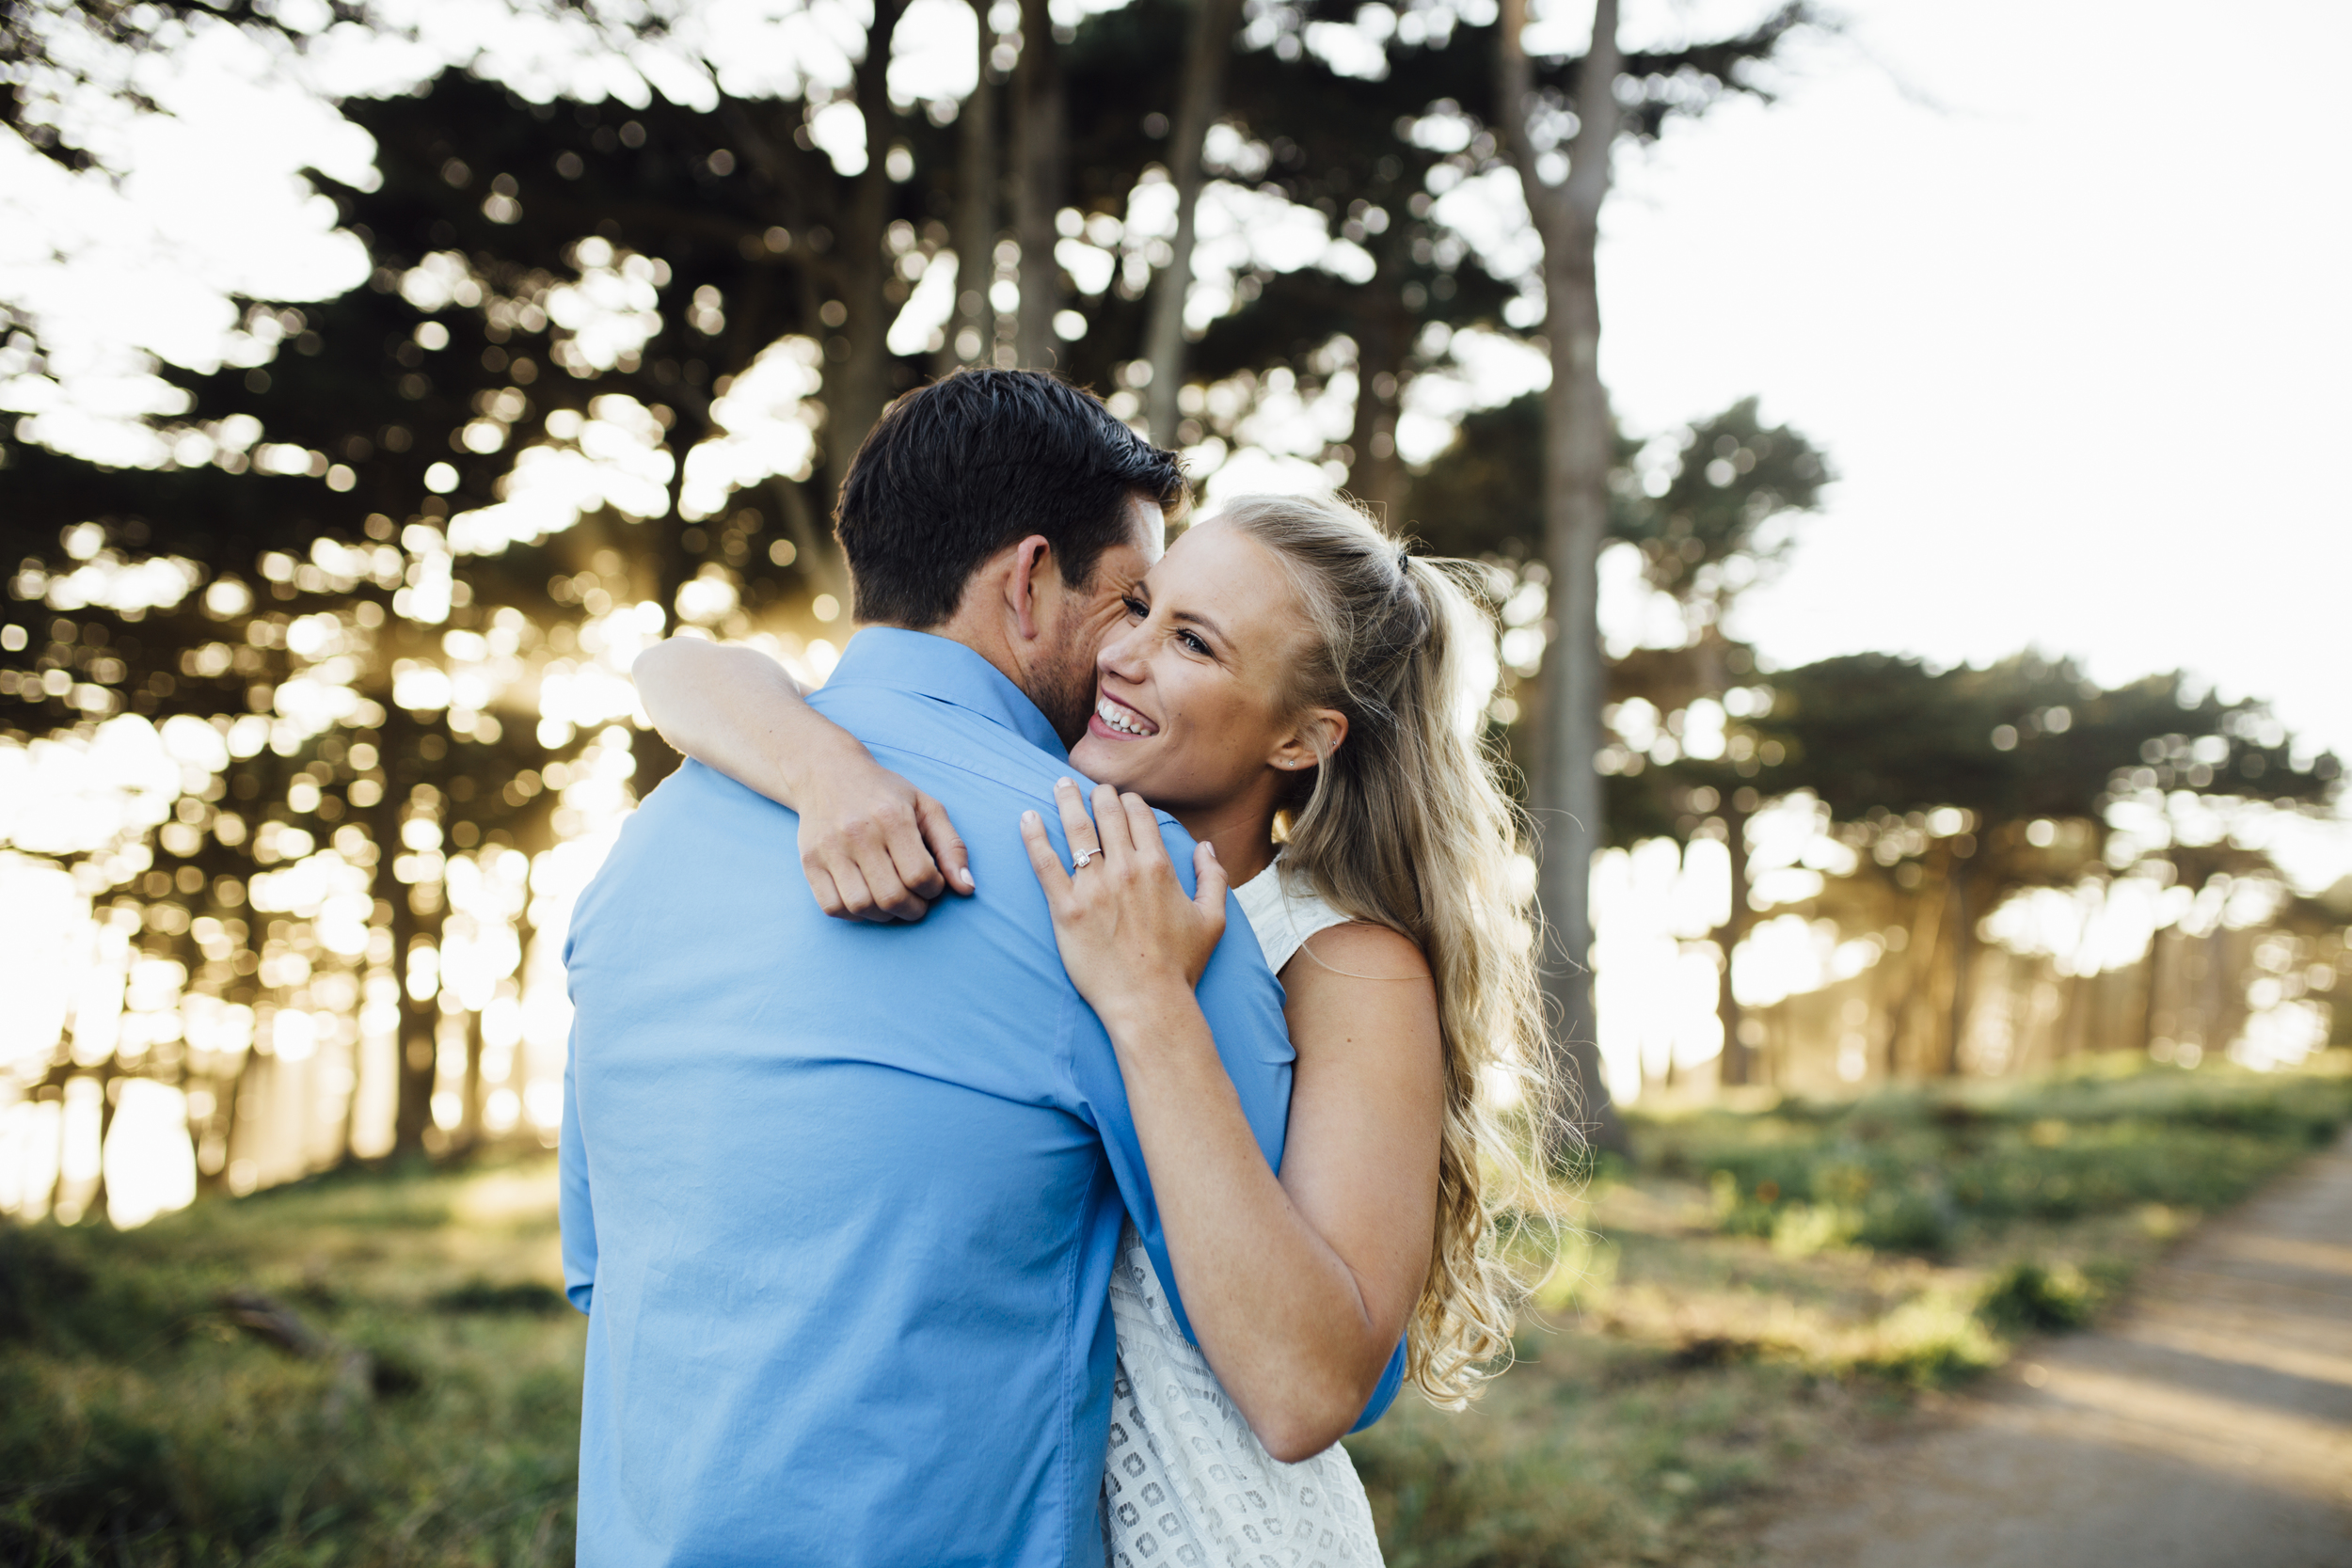 Nataly Zigdon Photography | San Francisco Engagement Photographer | Lands End Shoot